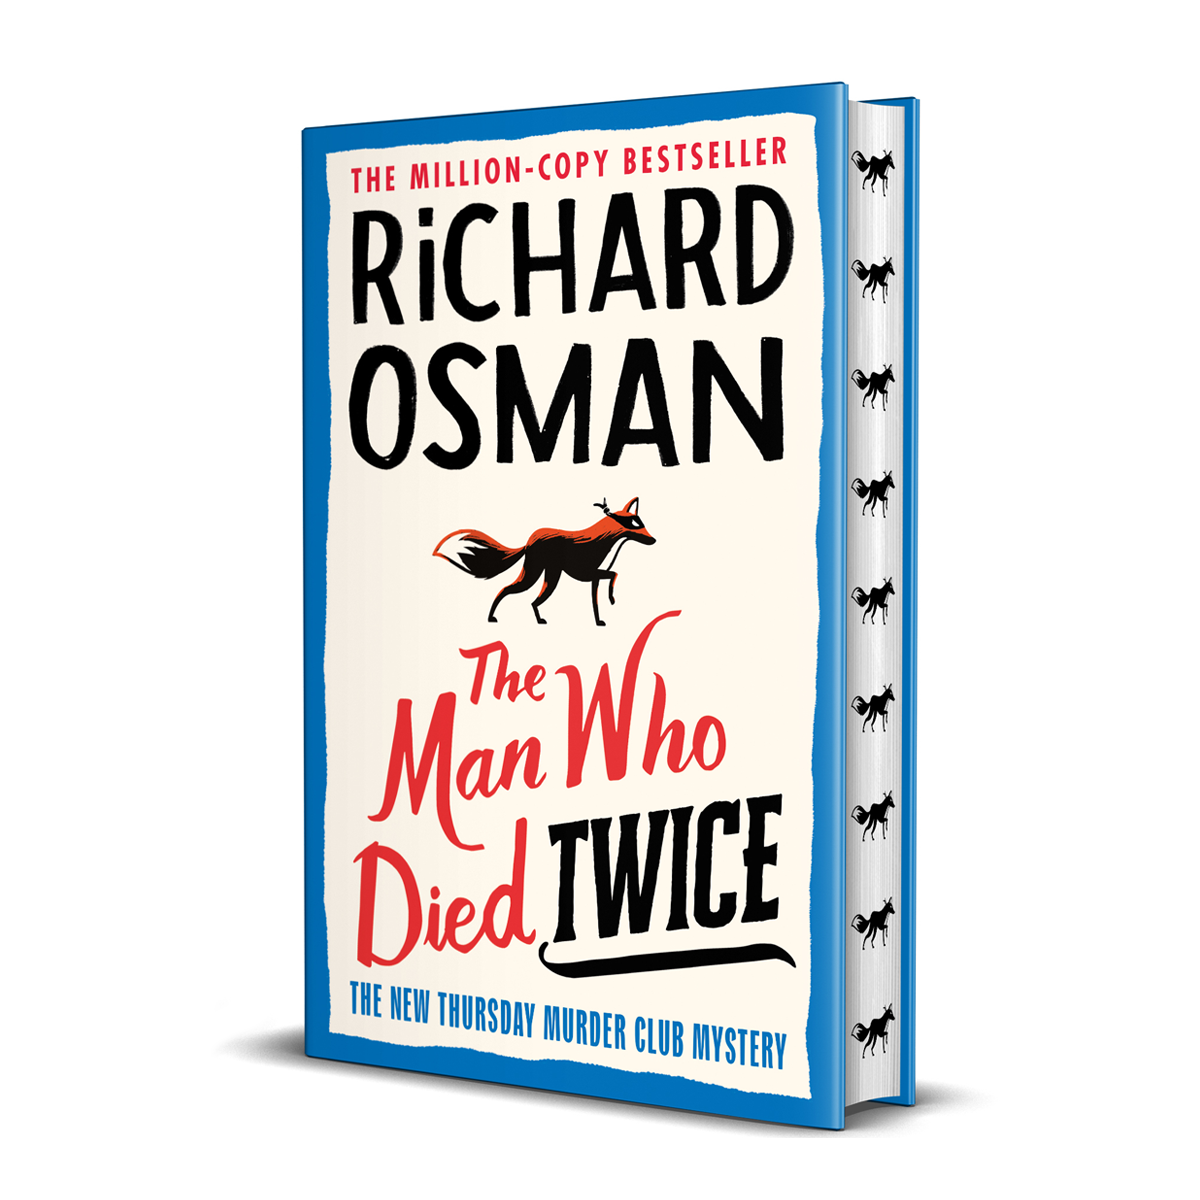 The Man Who Died Twice: Signed Exclusive Edition - The Thursday Murder Club 2 (Hardback)